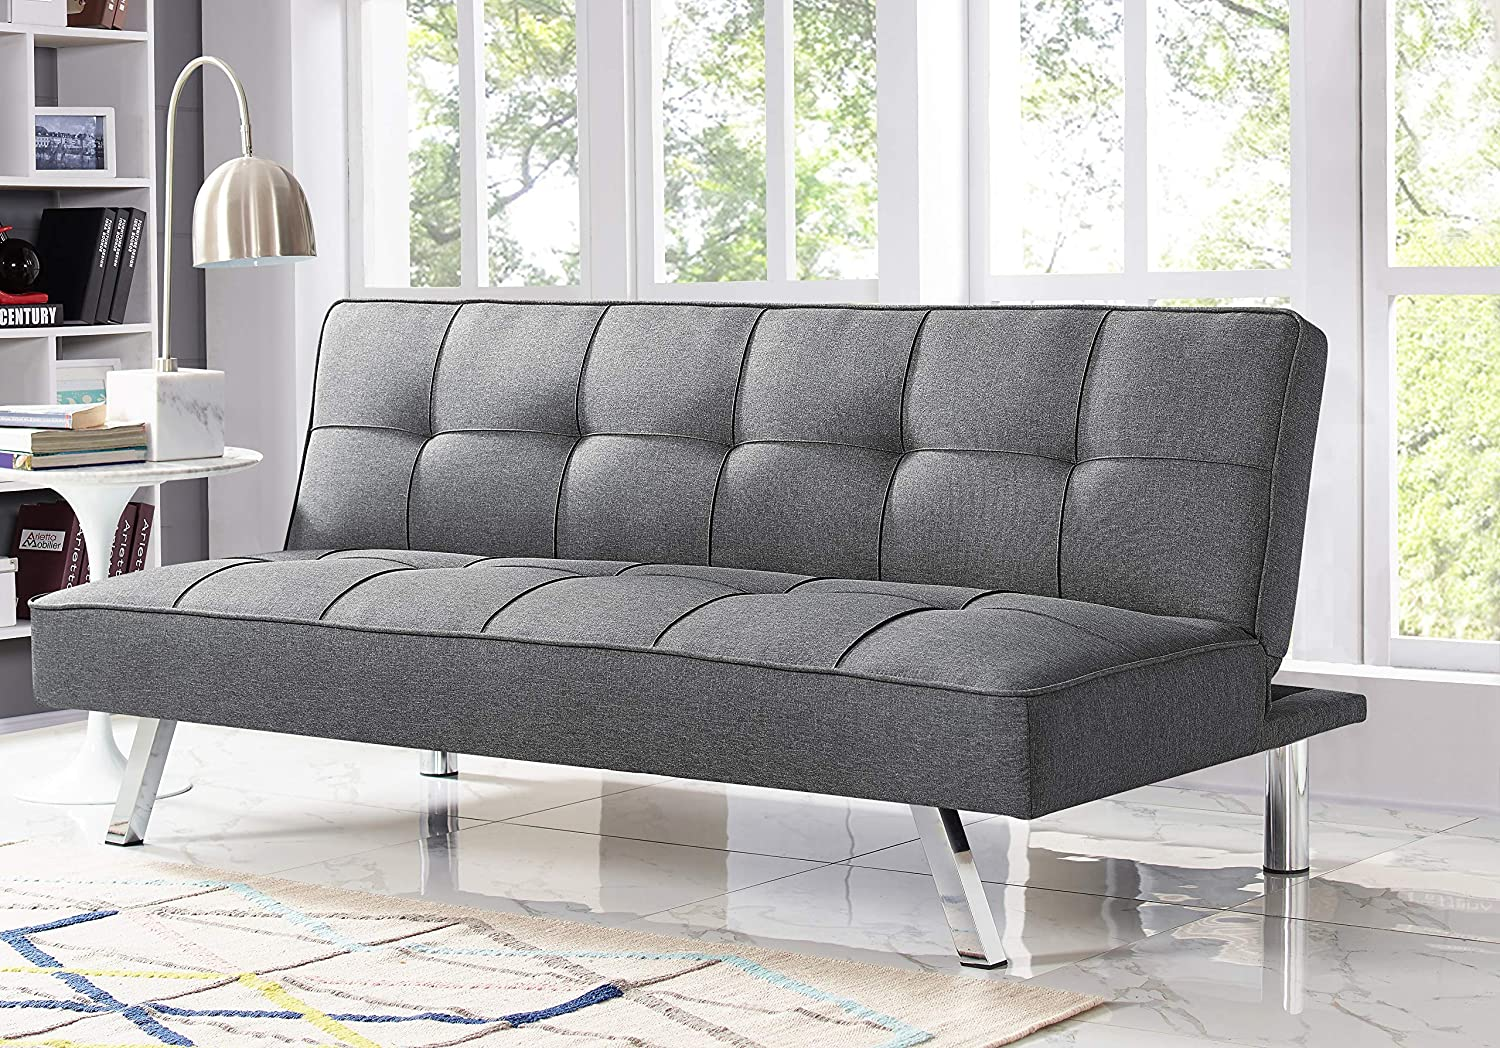 "What makes the Serta Rane convertible sofa 66"" amazing ? Review"